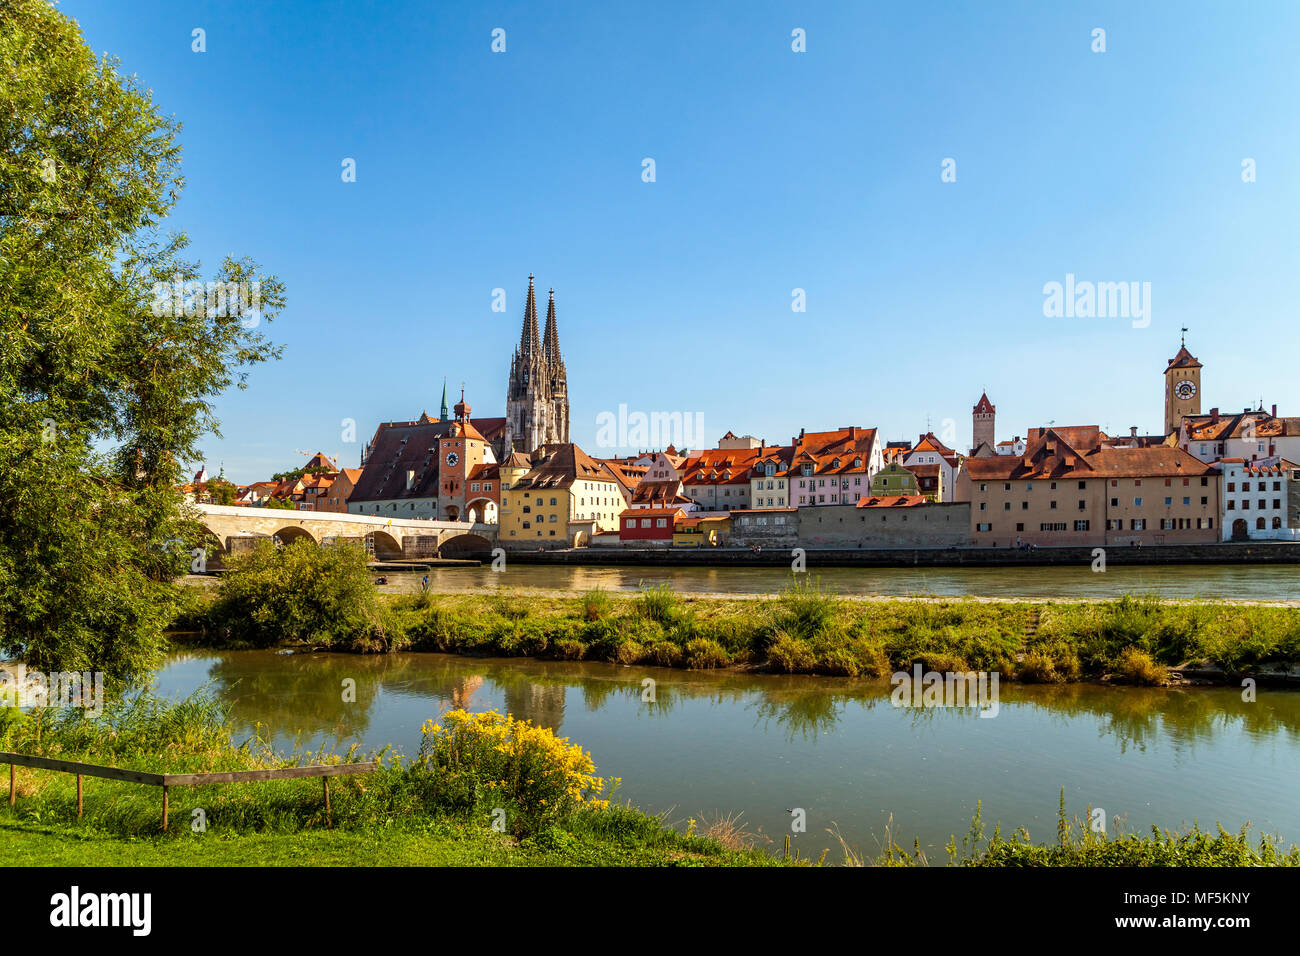 Germany, Regensburg, view of old town with cathedral and Danube River in the foreground - Stock Image